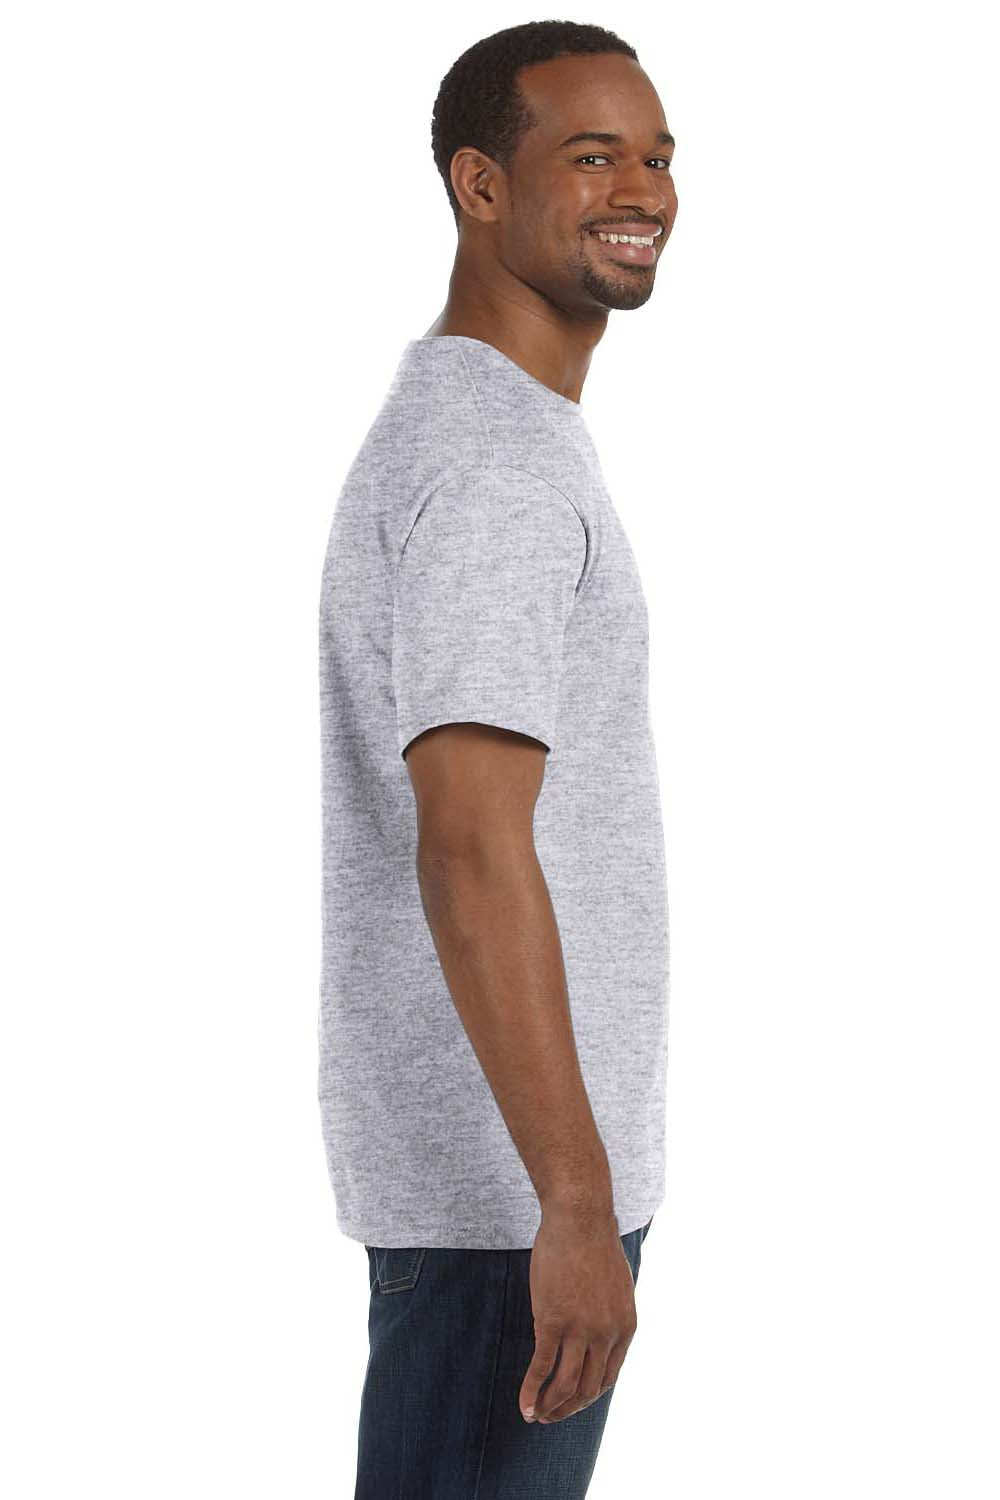 Hanes 5250T Mens ComfortSoft Short Sleeve Crewneck T-Shirt Ash Grey Side